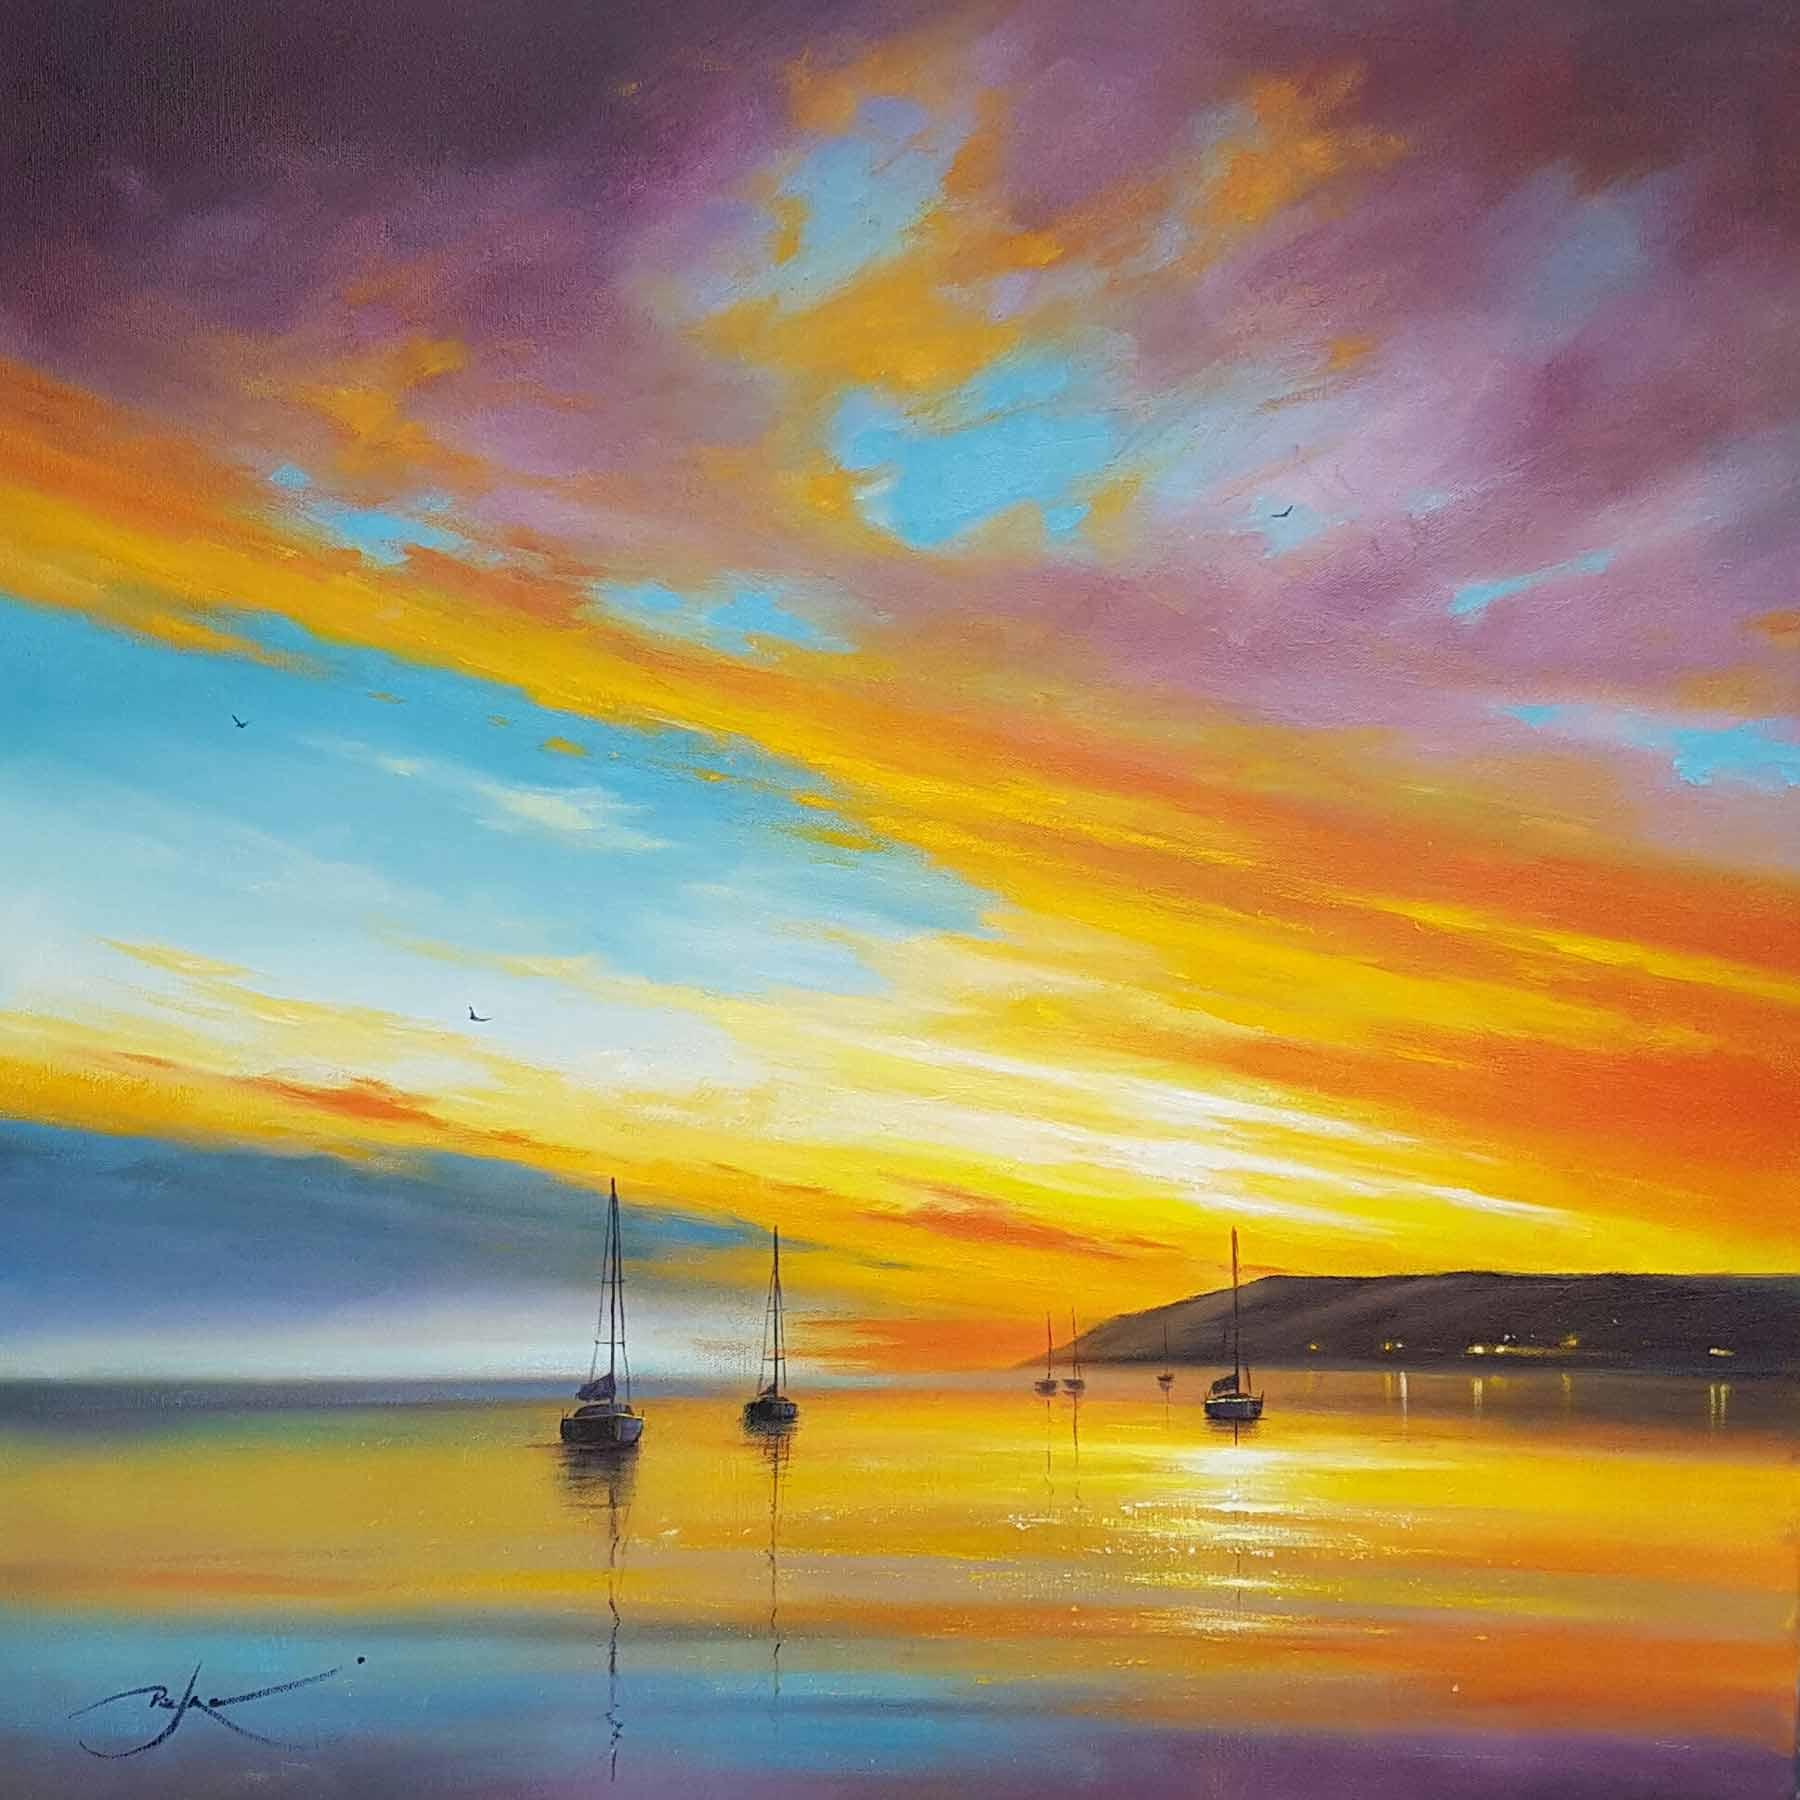 Colour Burst, Ben Payne